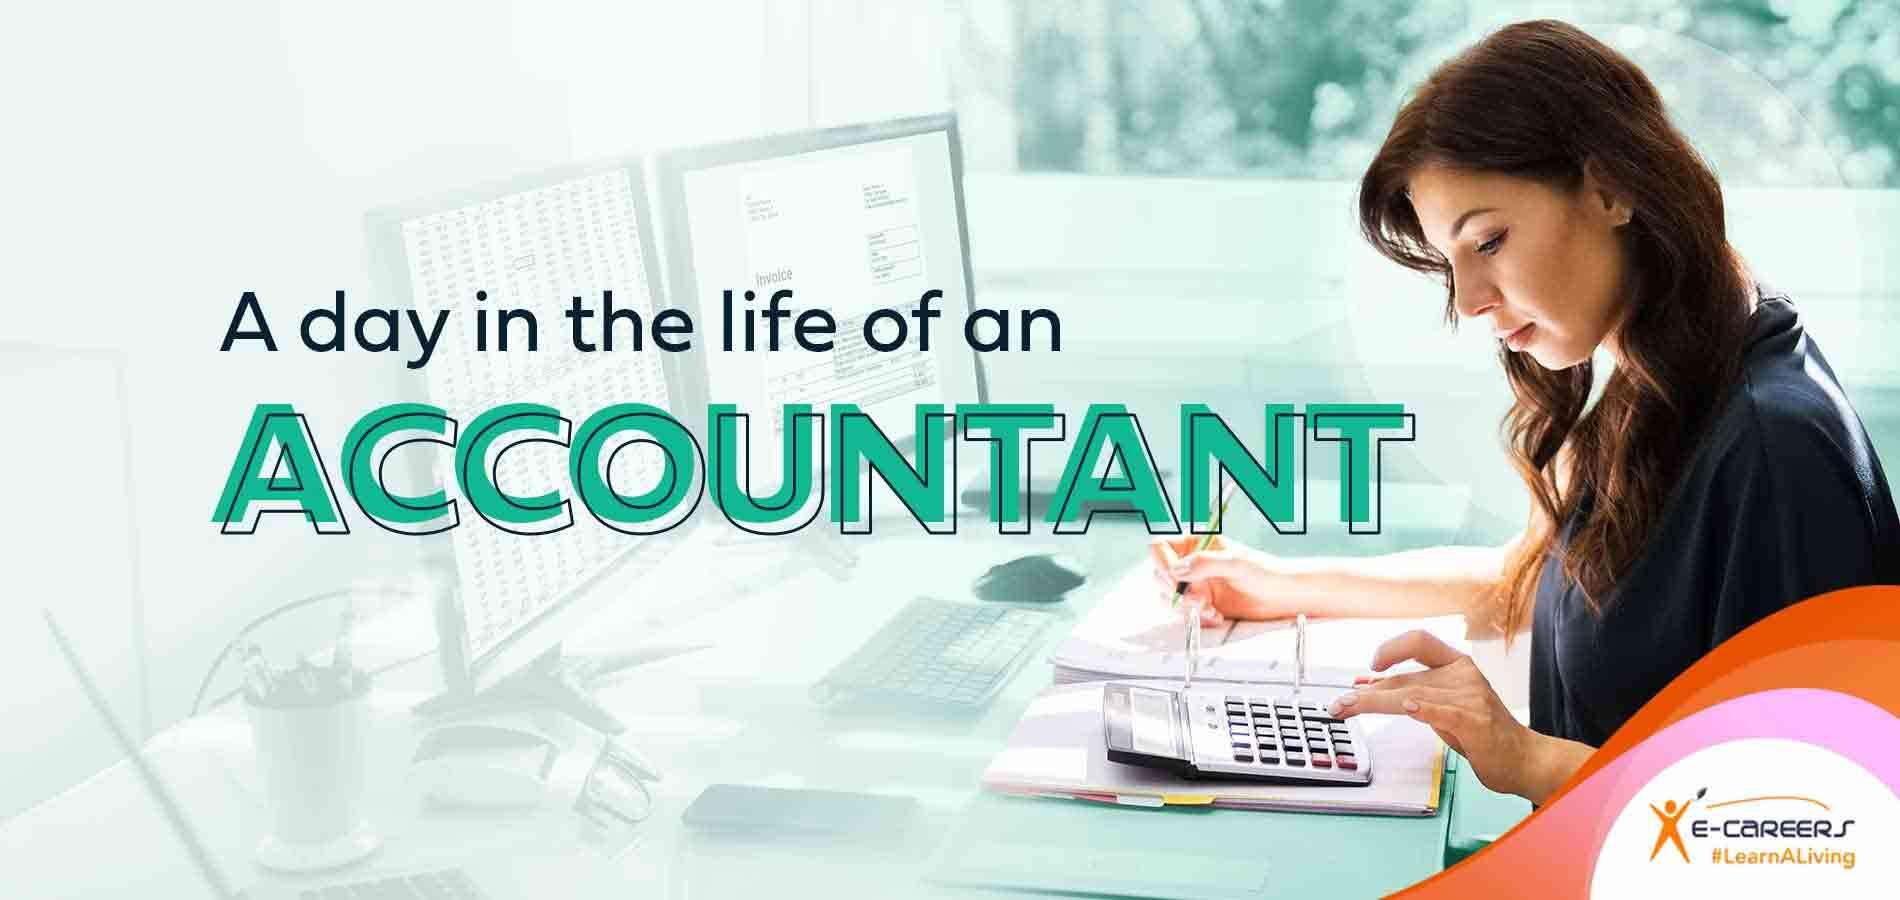 A day in the life of an Accountant